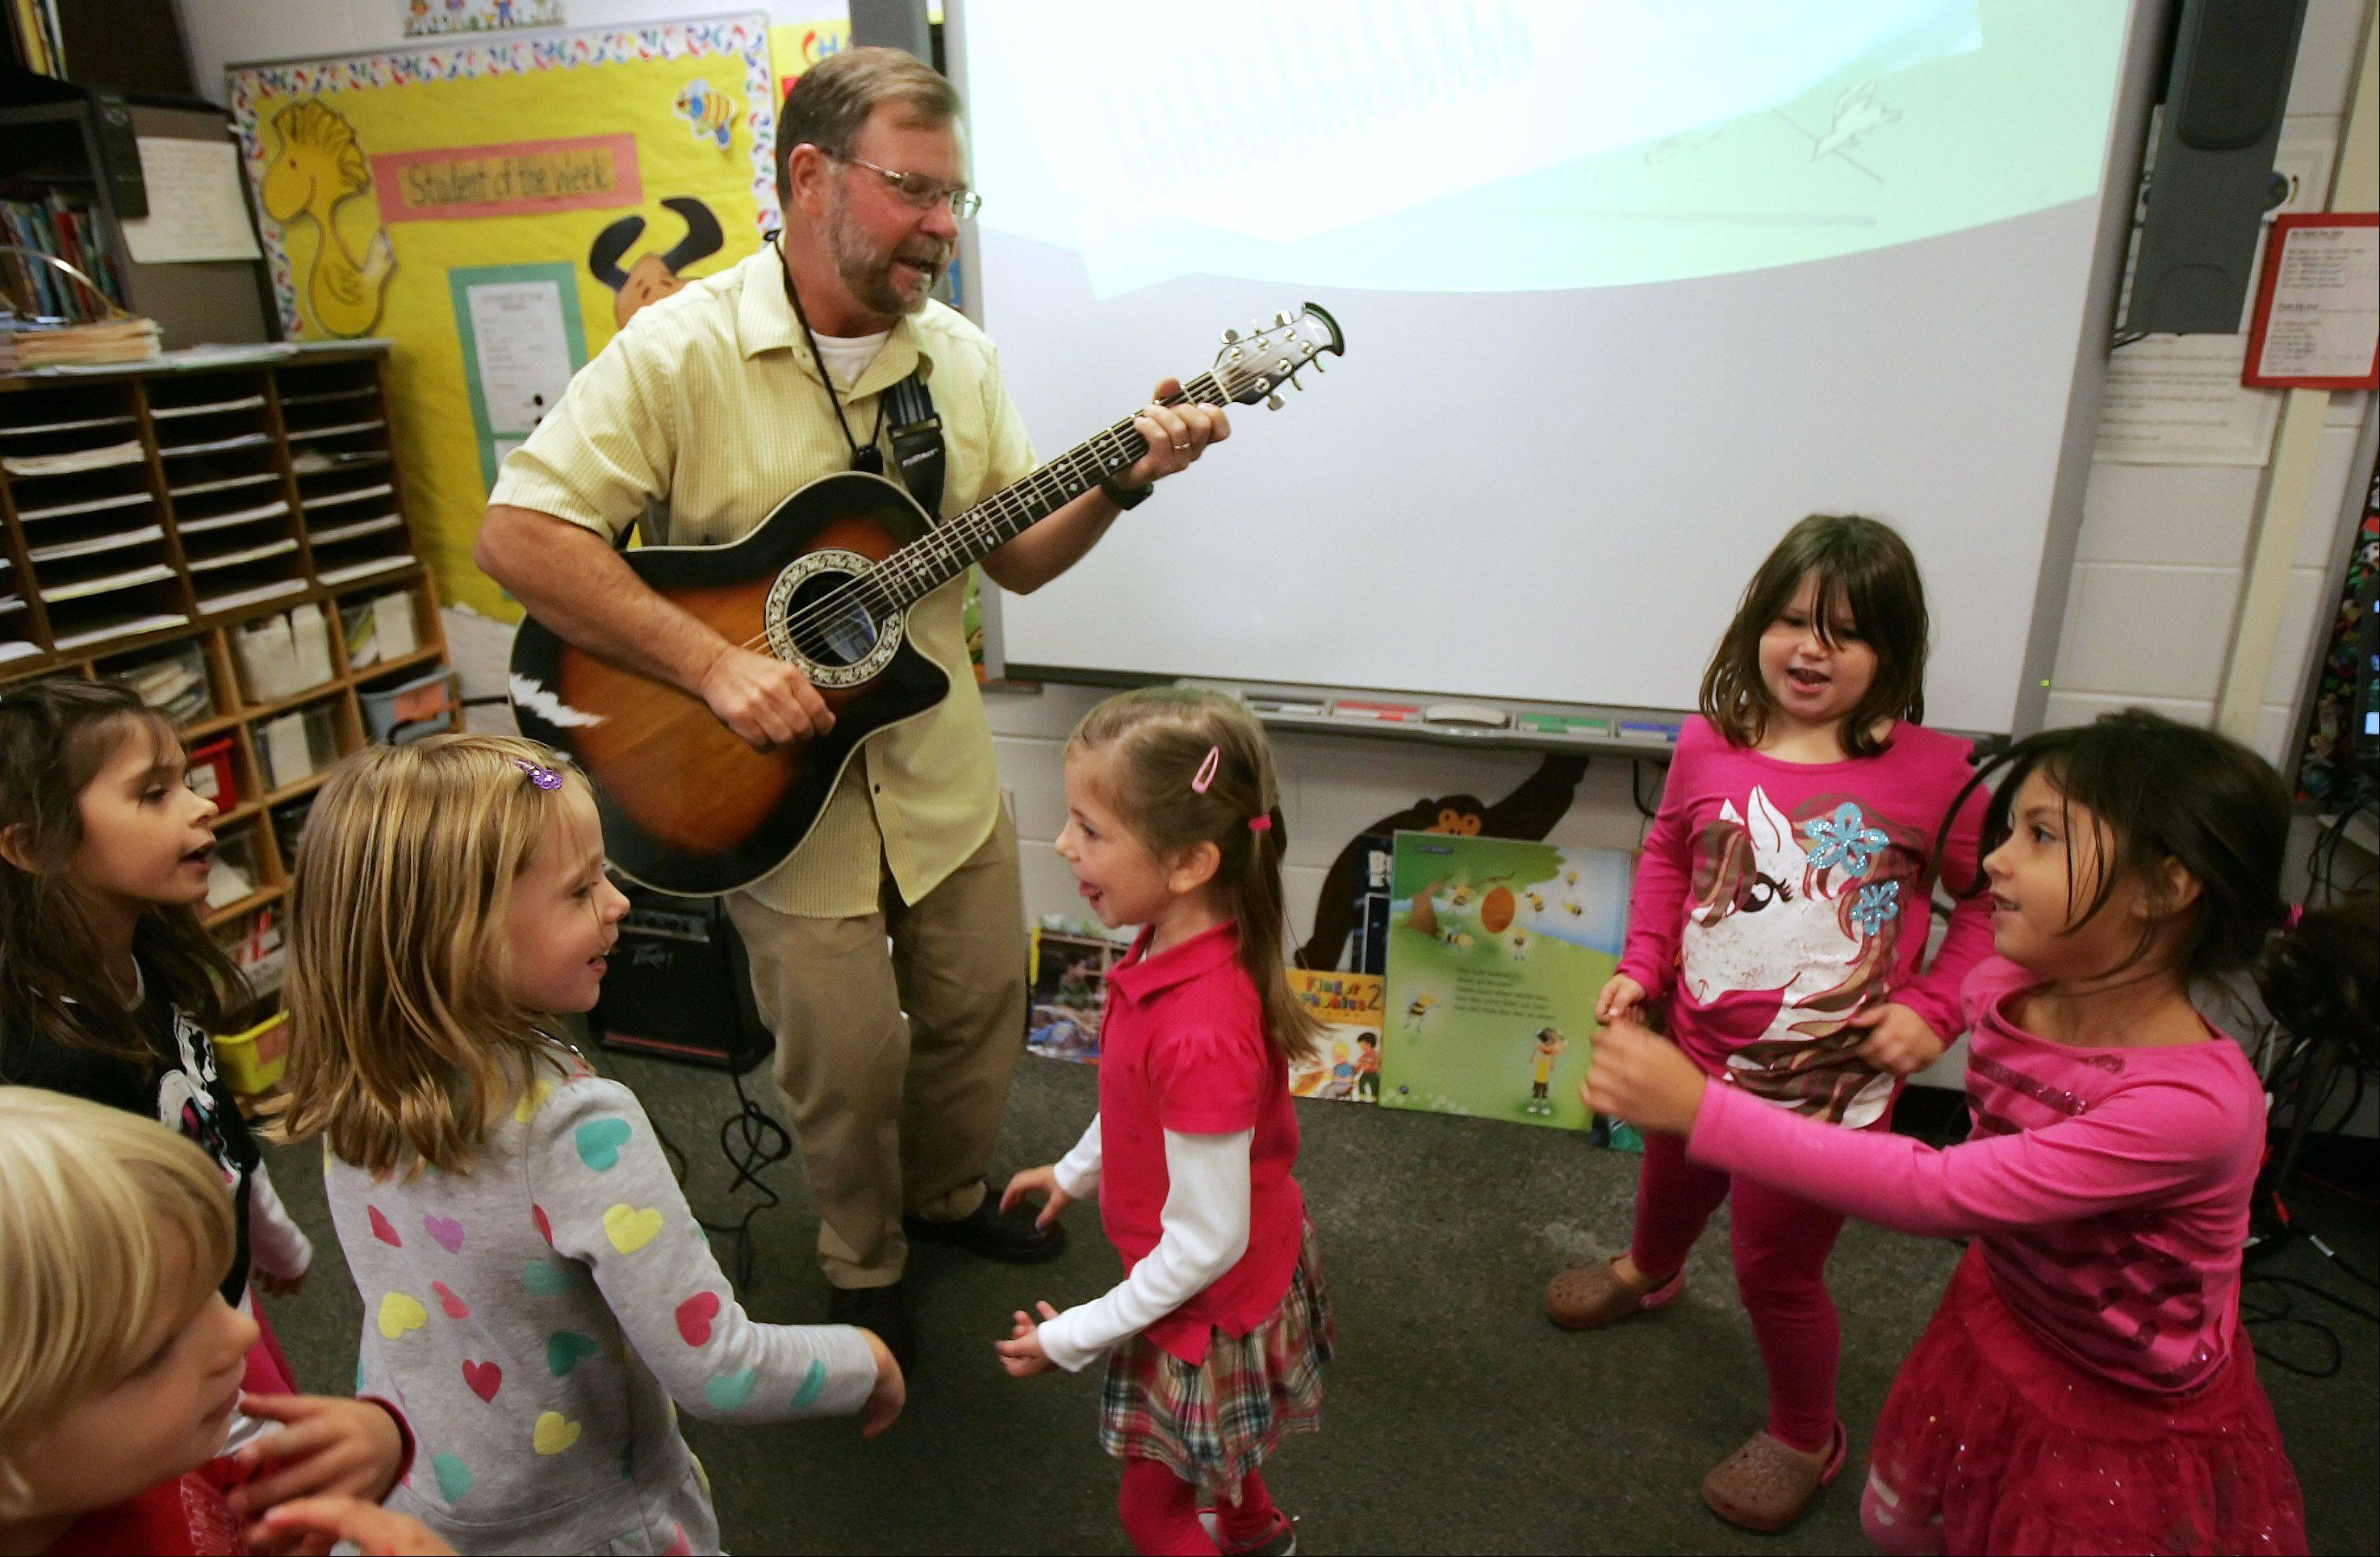 Kindergarten students move to �Dance Your Sillies Out� as teacher Tim Gapp plays guitar at North Barrington Elementary School in 2012. Barrington Unit District 220 is considering offering full-day kindergarten.